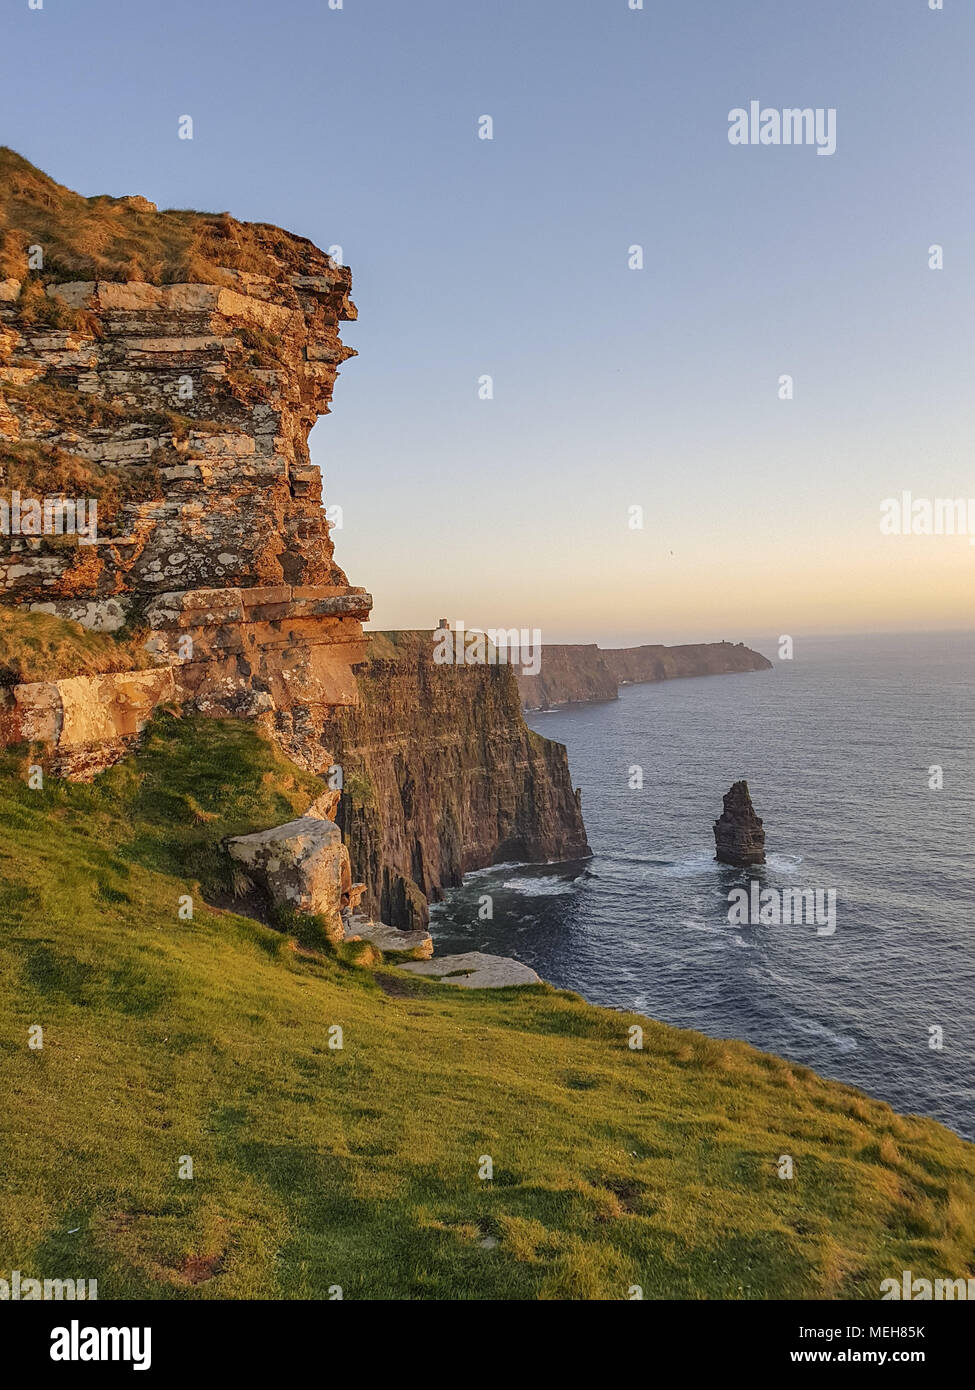 Beautiful Scenic Aerial drone view of Ireland Cliffs Of Moher in County Clare. Sunset over the Cliffs of Moher. Epic Irish rural countryside landscape - Stock Image